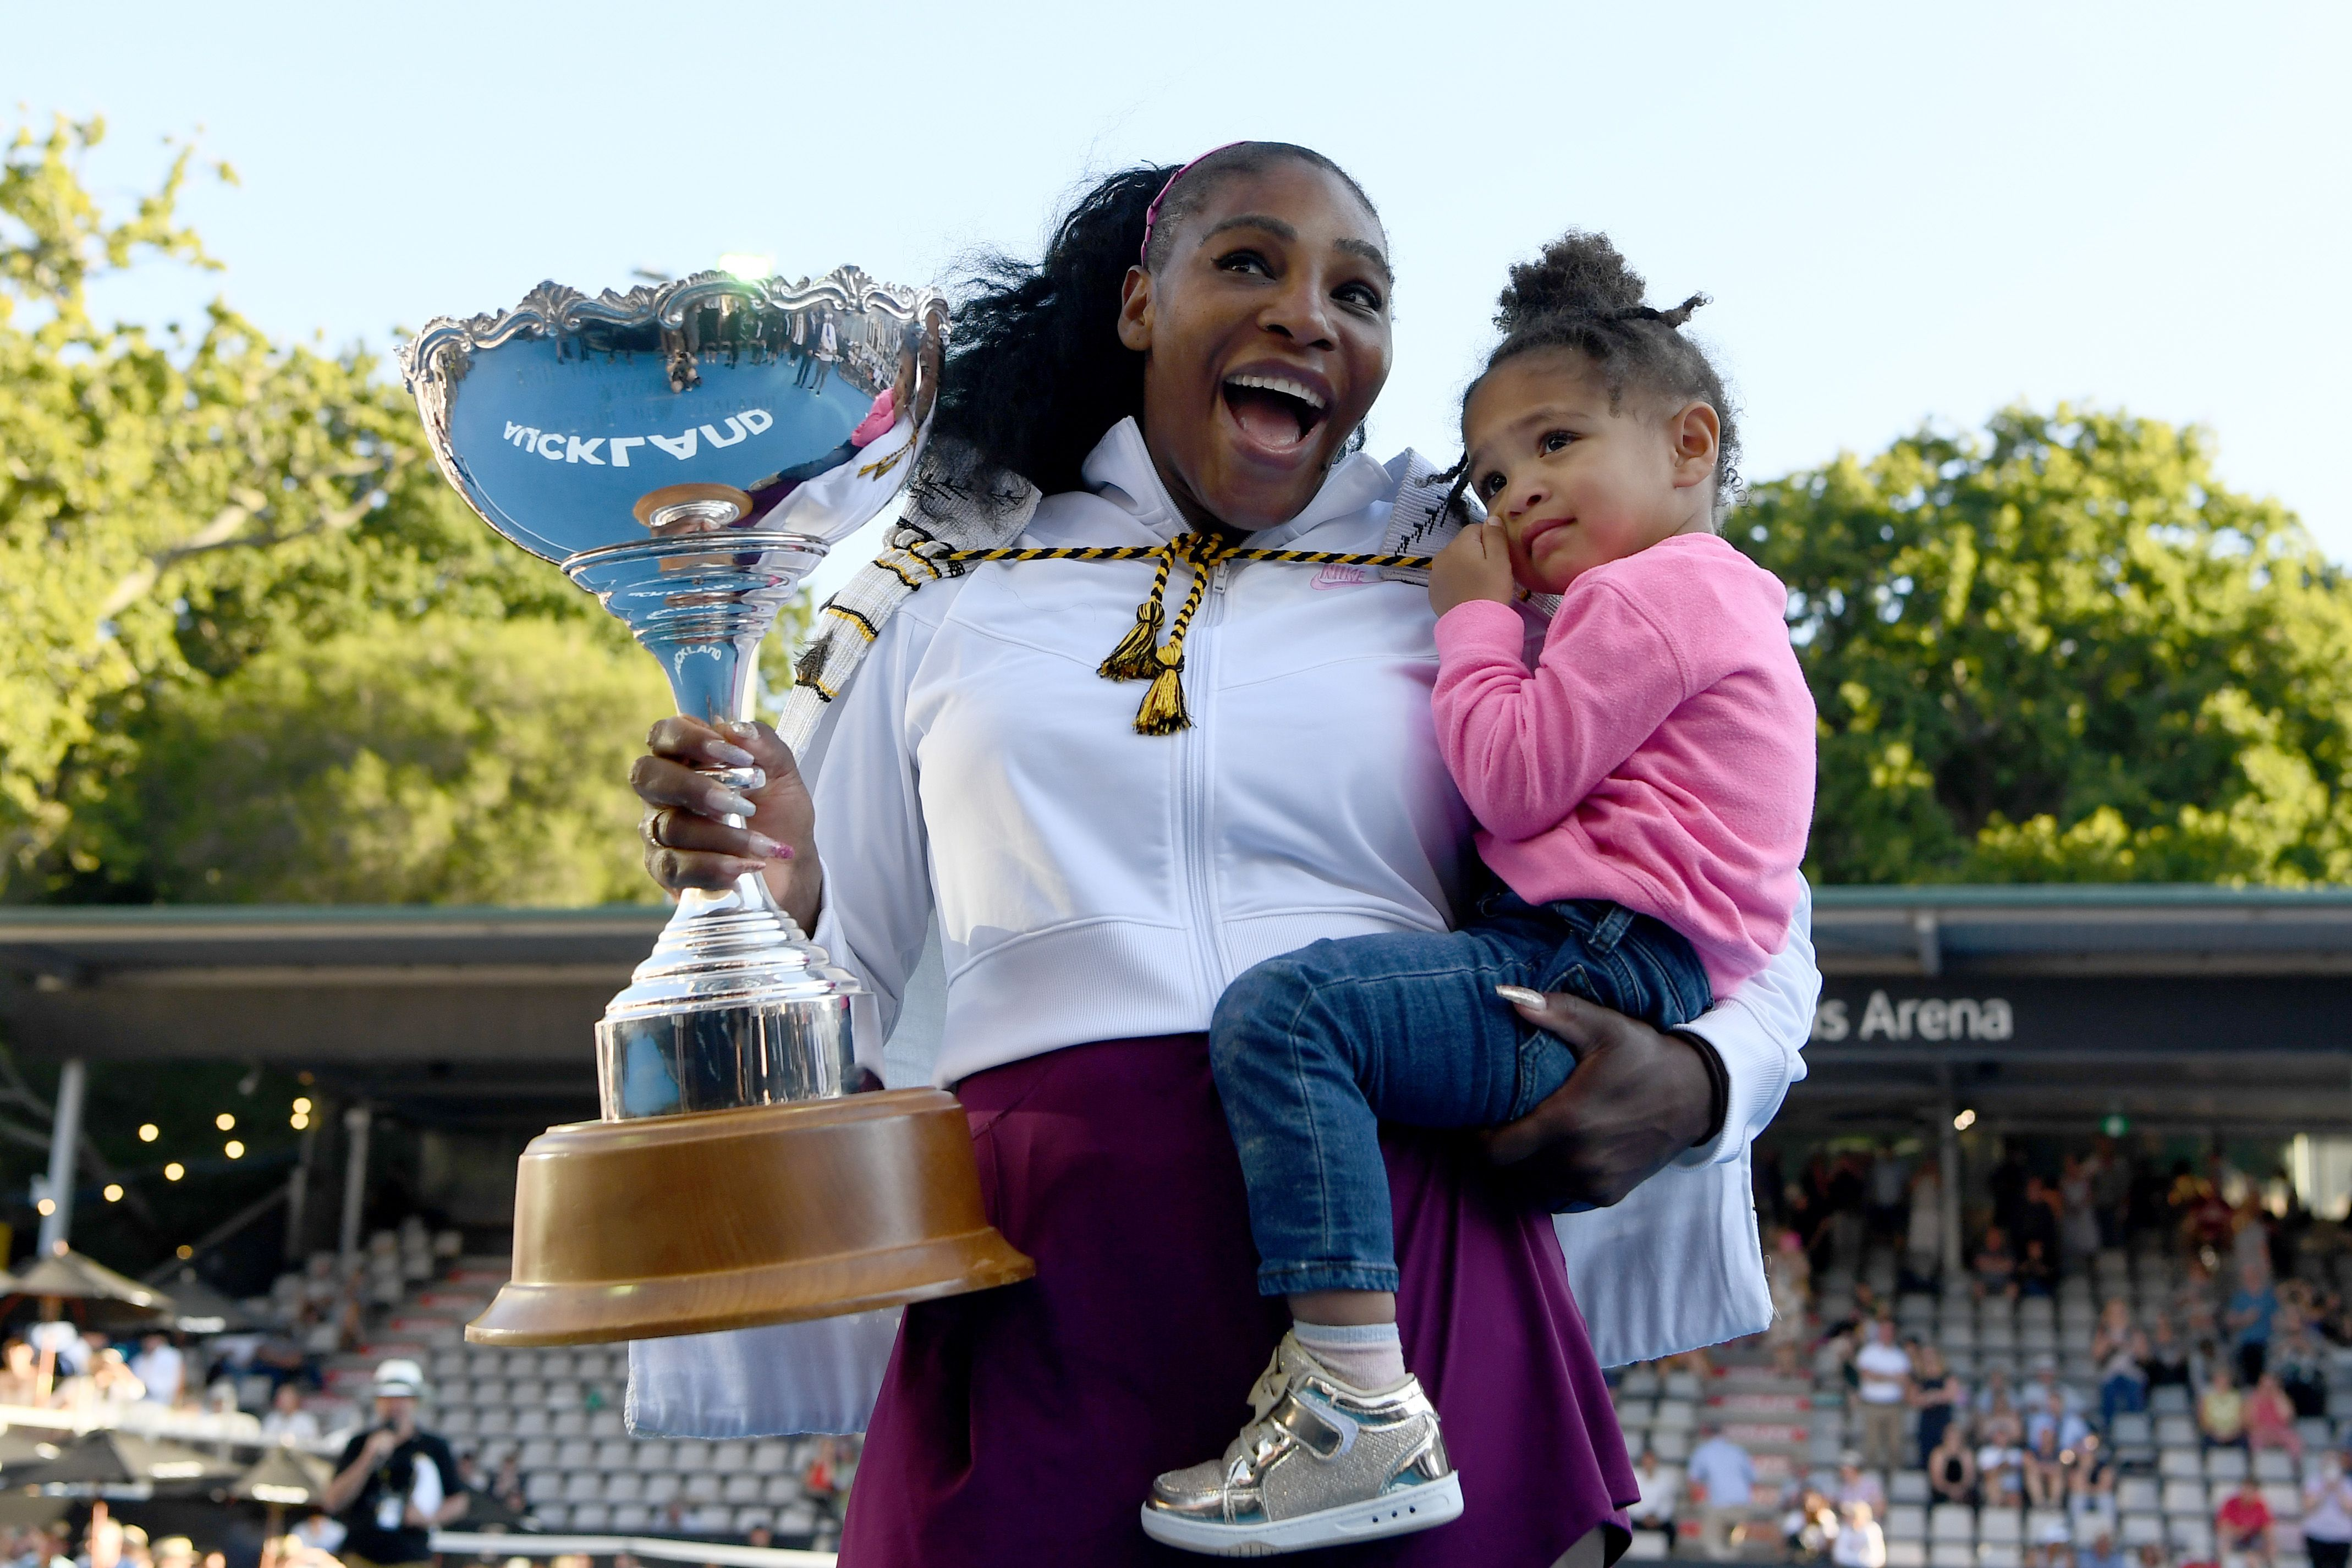 Please Enjoy These Adorable Videos of Serena Williams Giving Daughter Olympia a Tennis Lesson